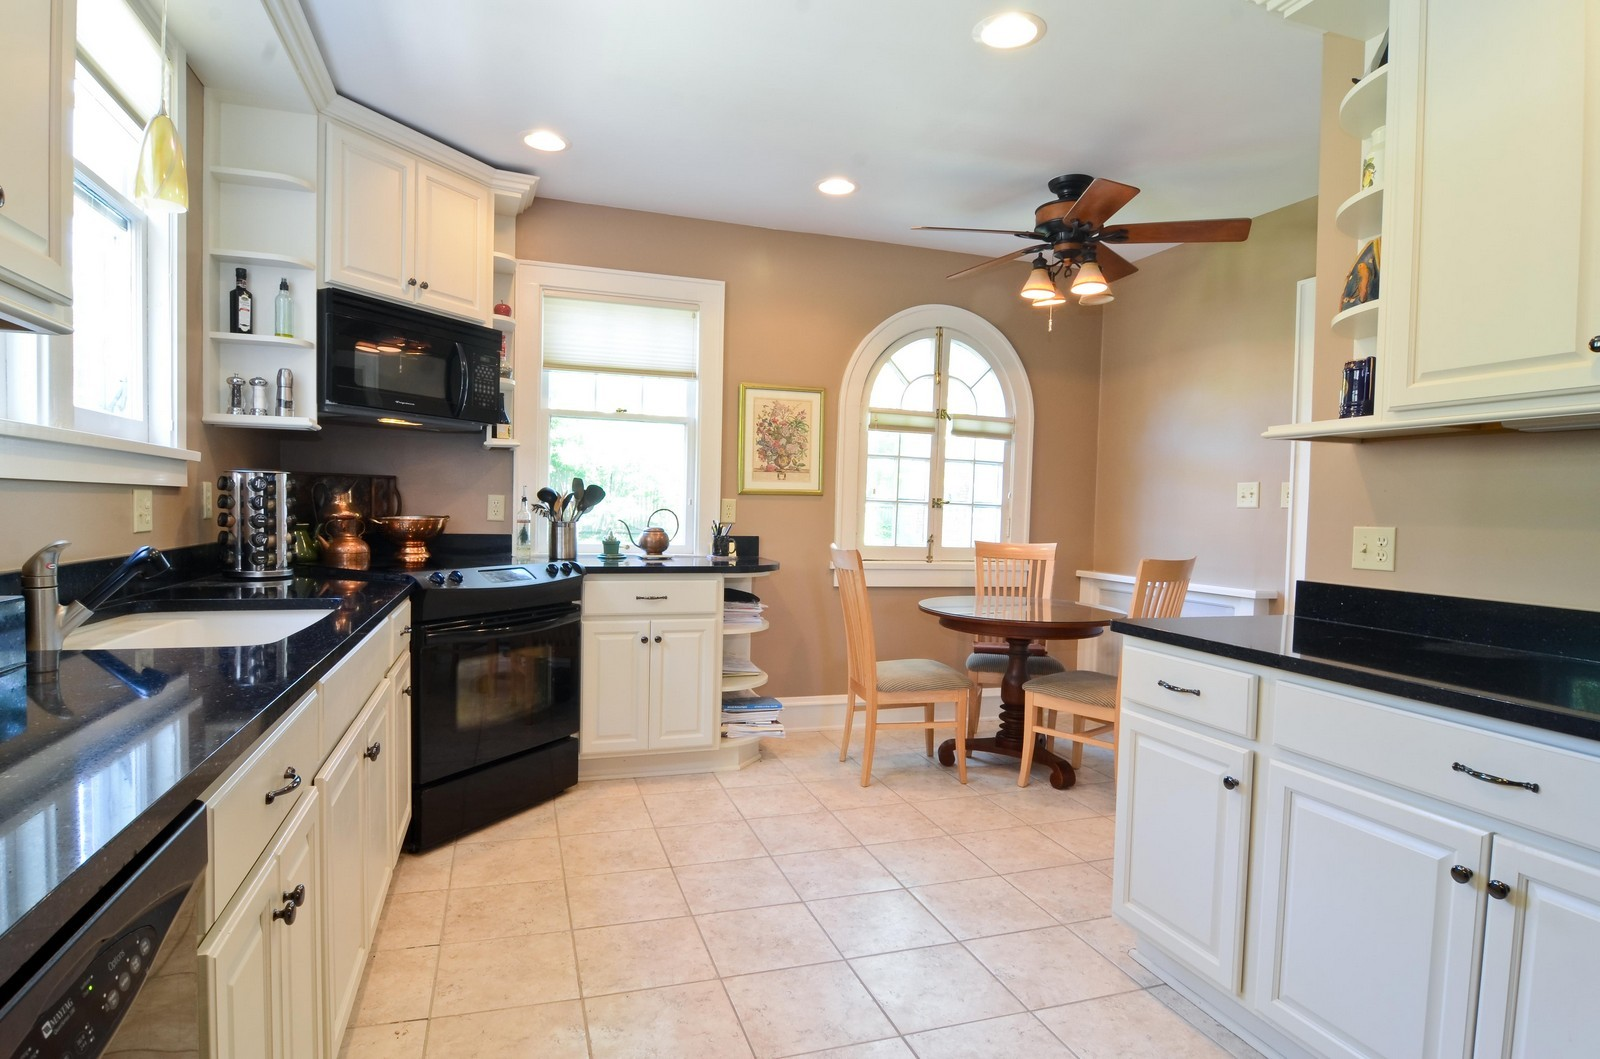 Real Estate Photography - 3444 N Hackett Ave, Milwaukee, WI, 53211 - Kitchen